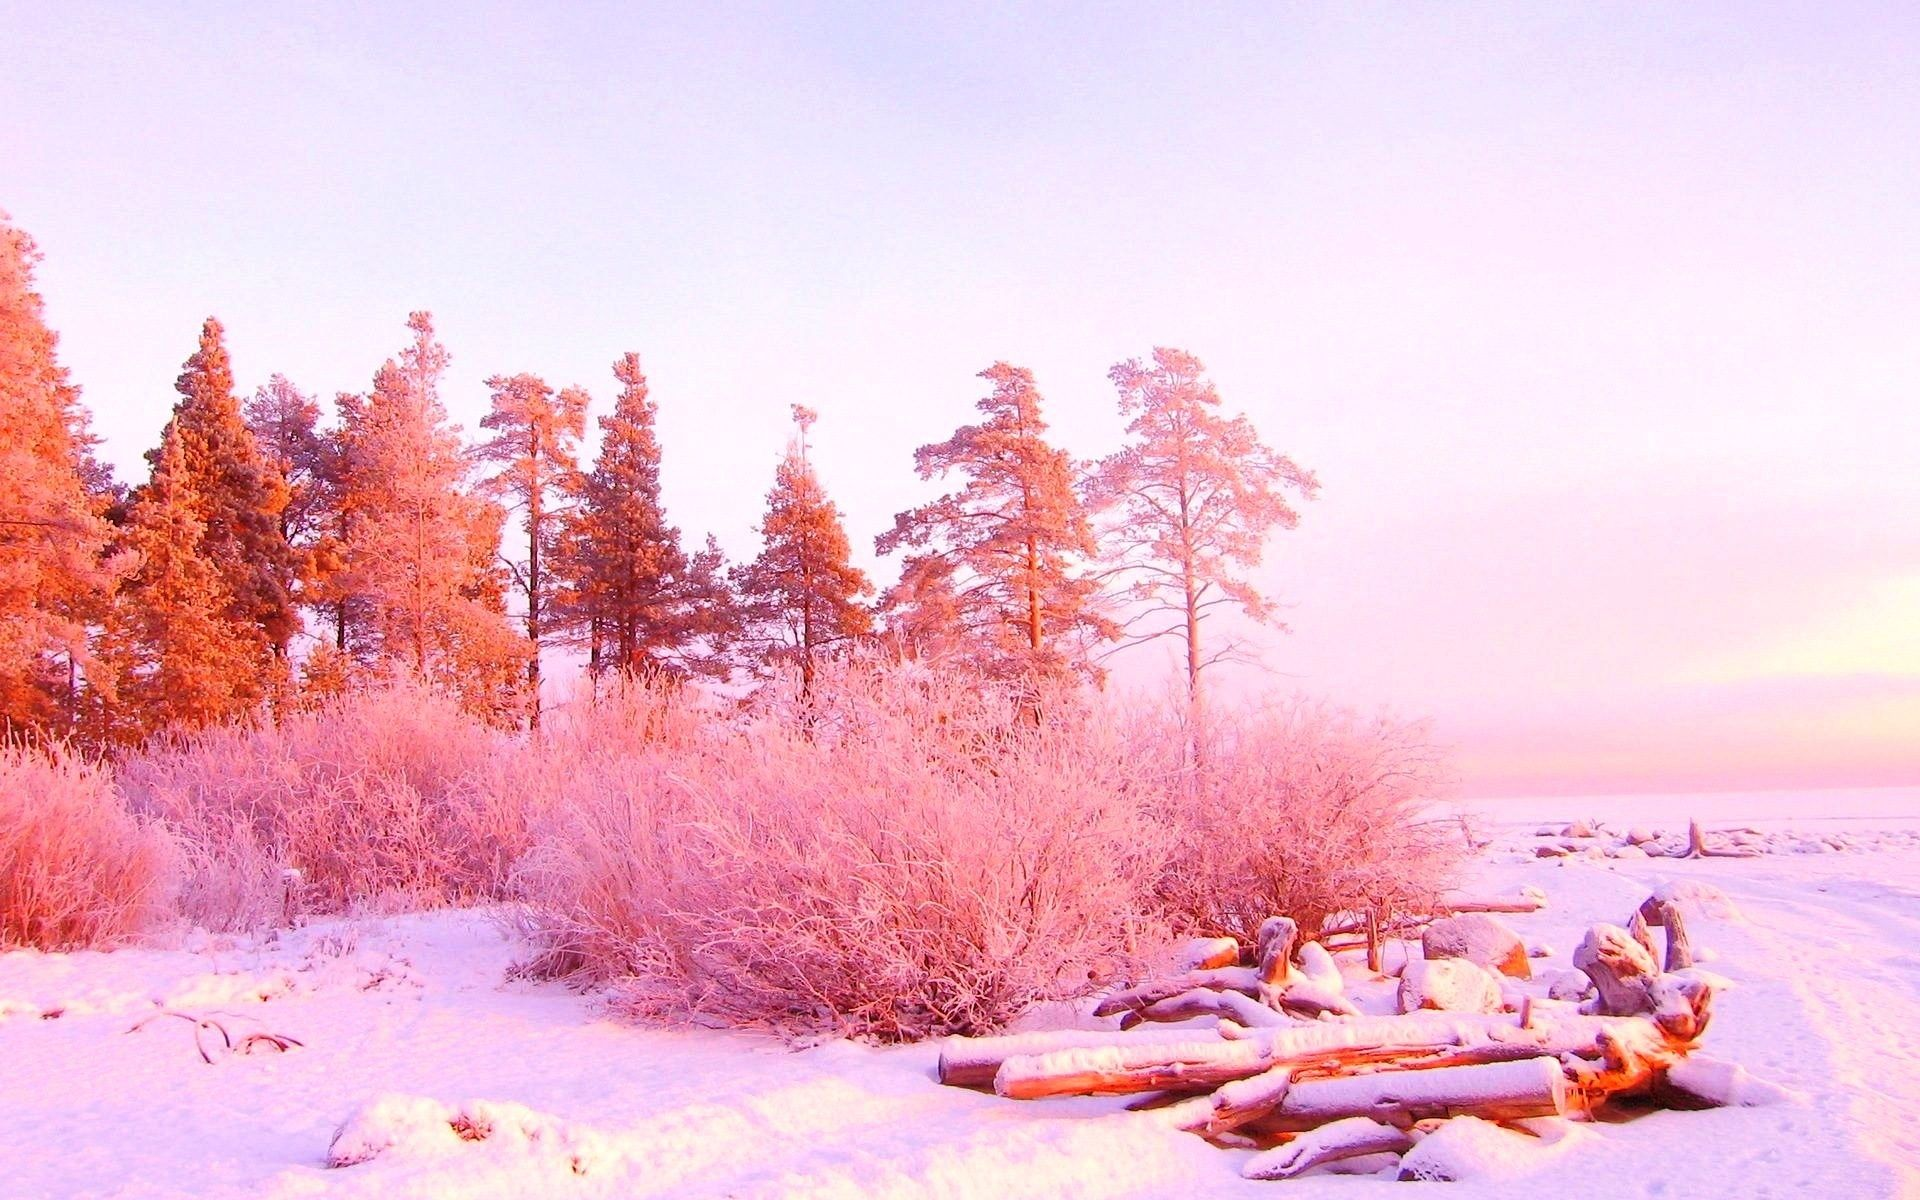 Super Pretty Pink Winterscape Winter Wallpaper Vintage Landscape Pink And Gold Wallpaper